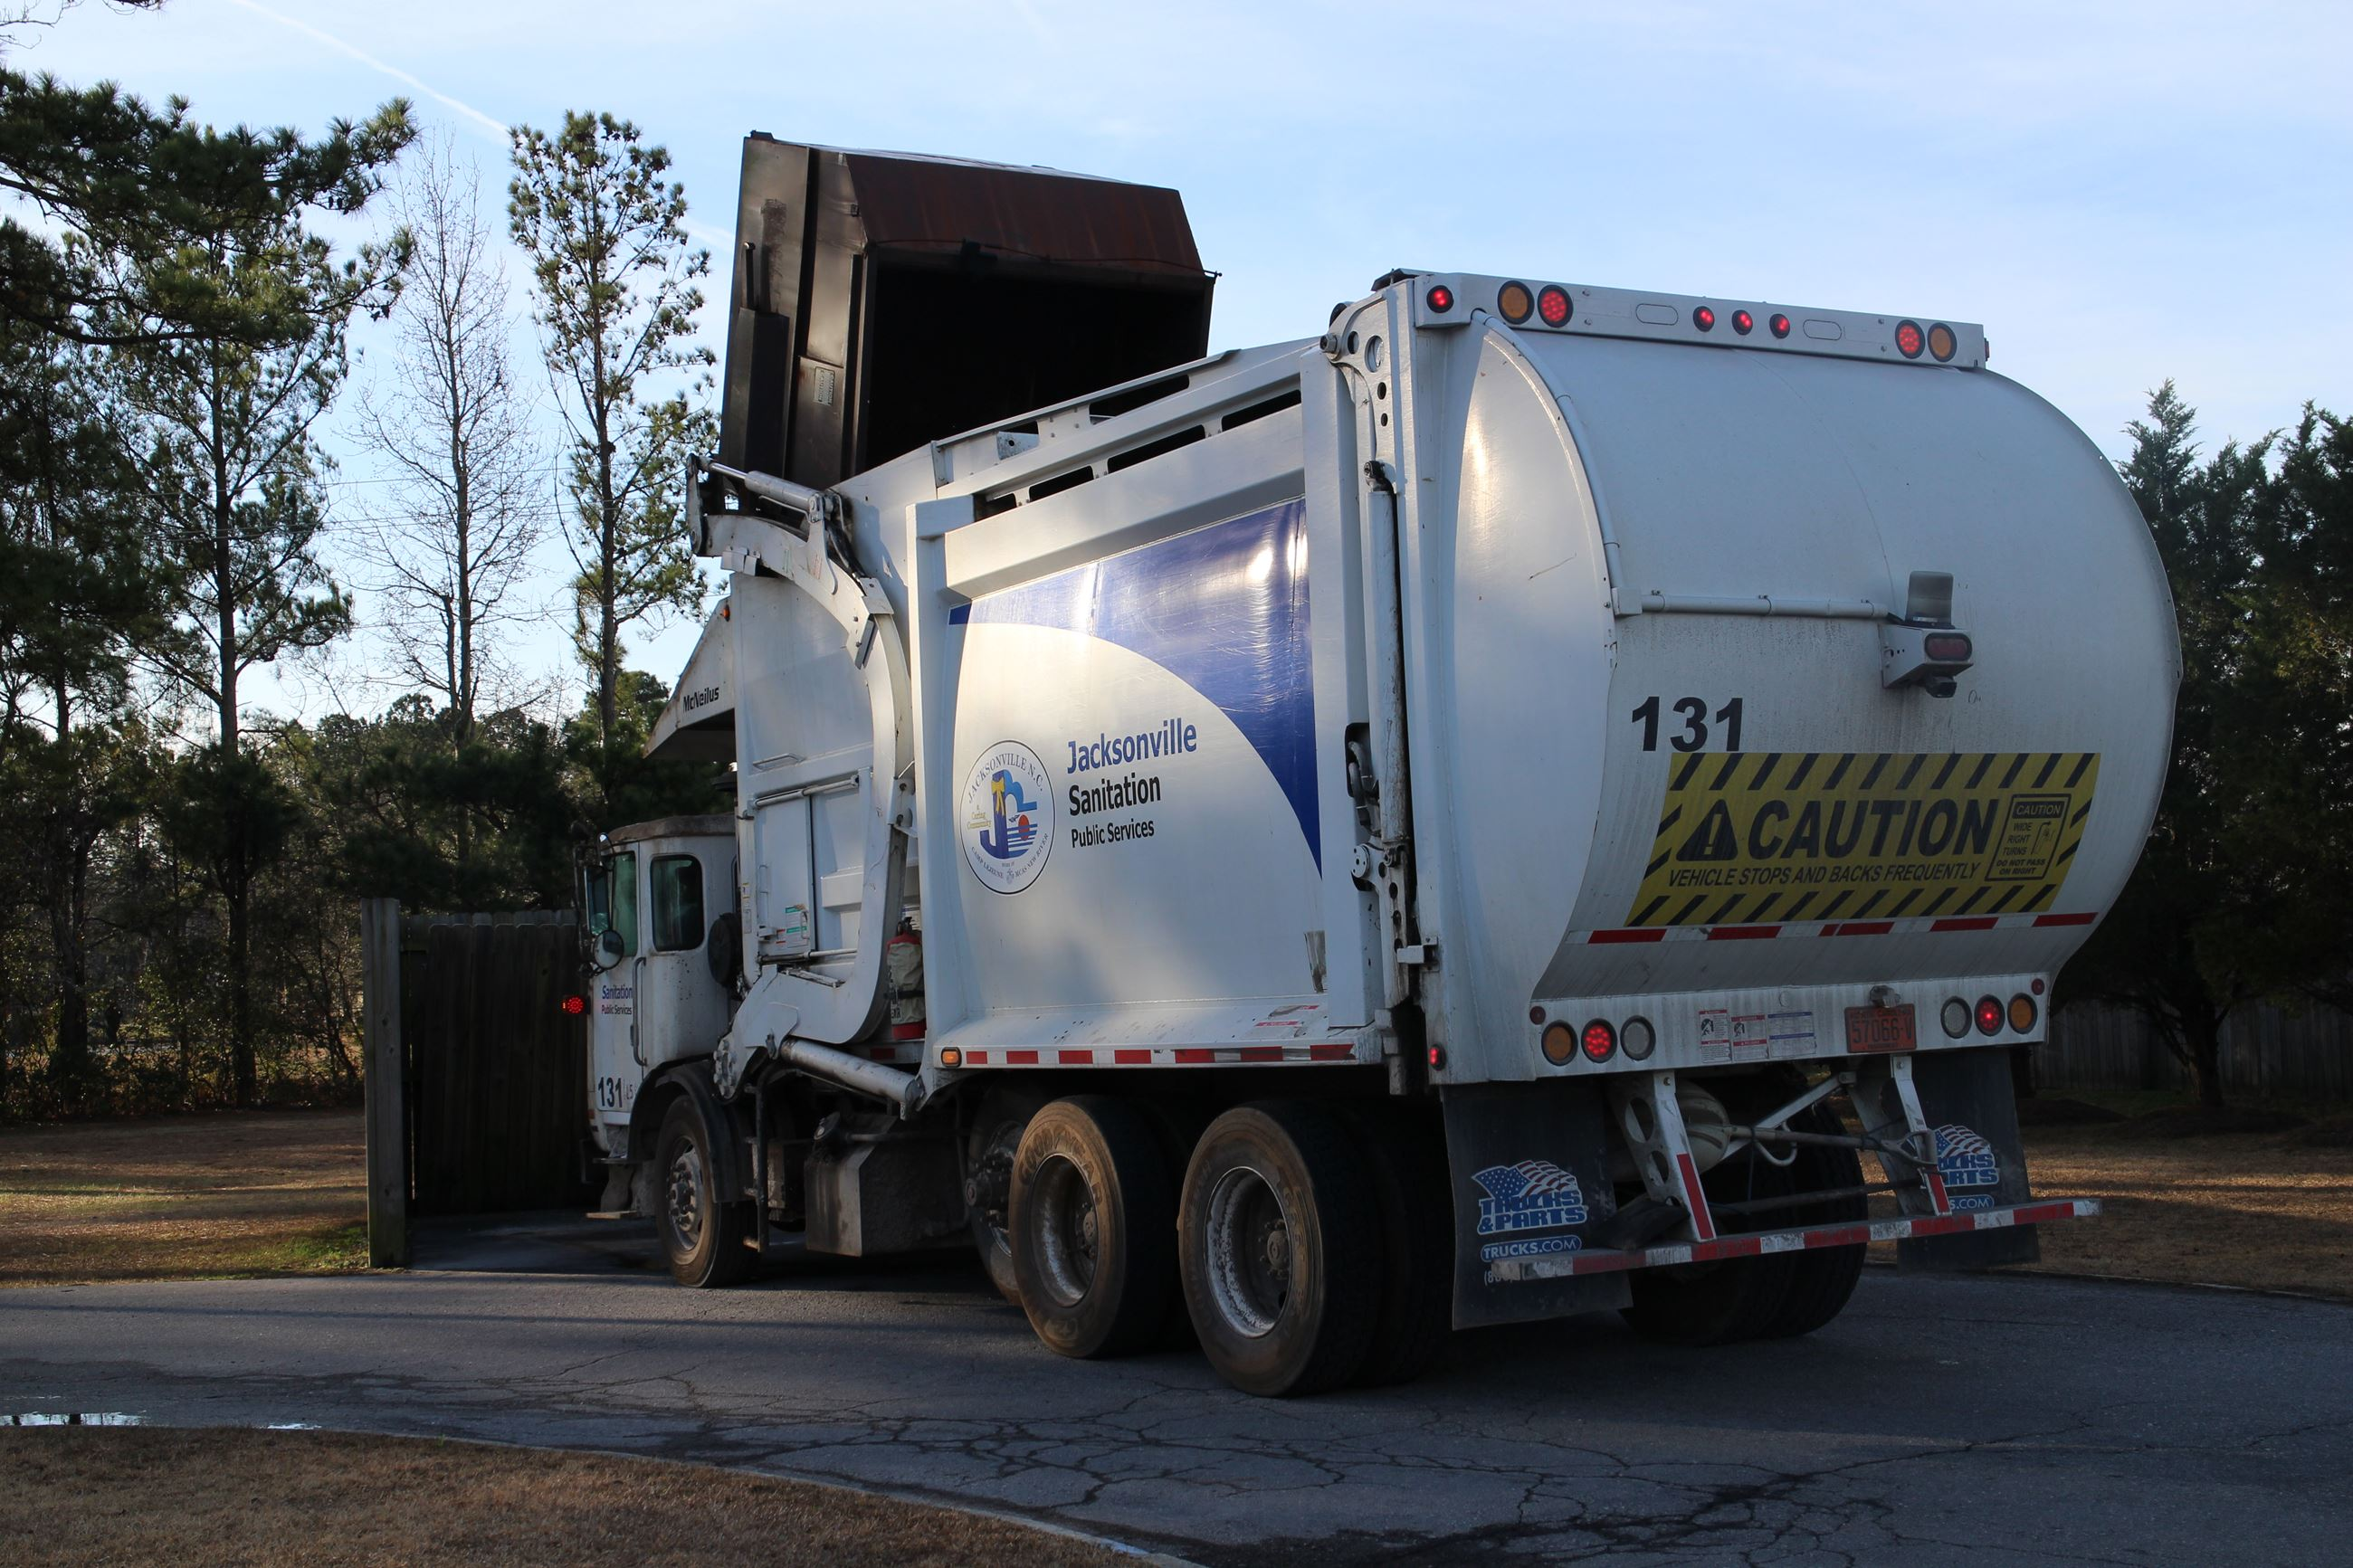 Commercial Sanitation Service, City of Jacksonville